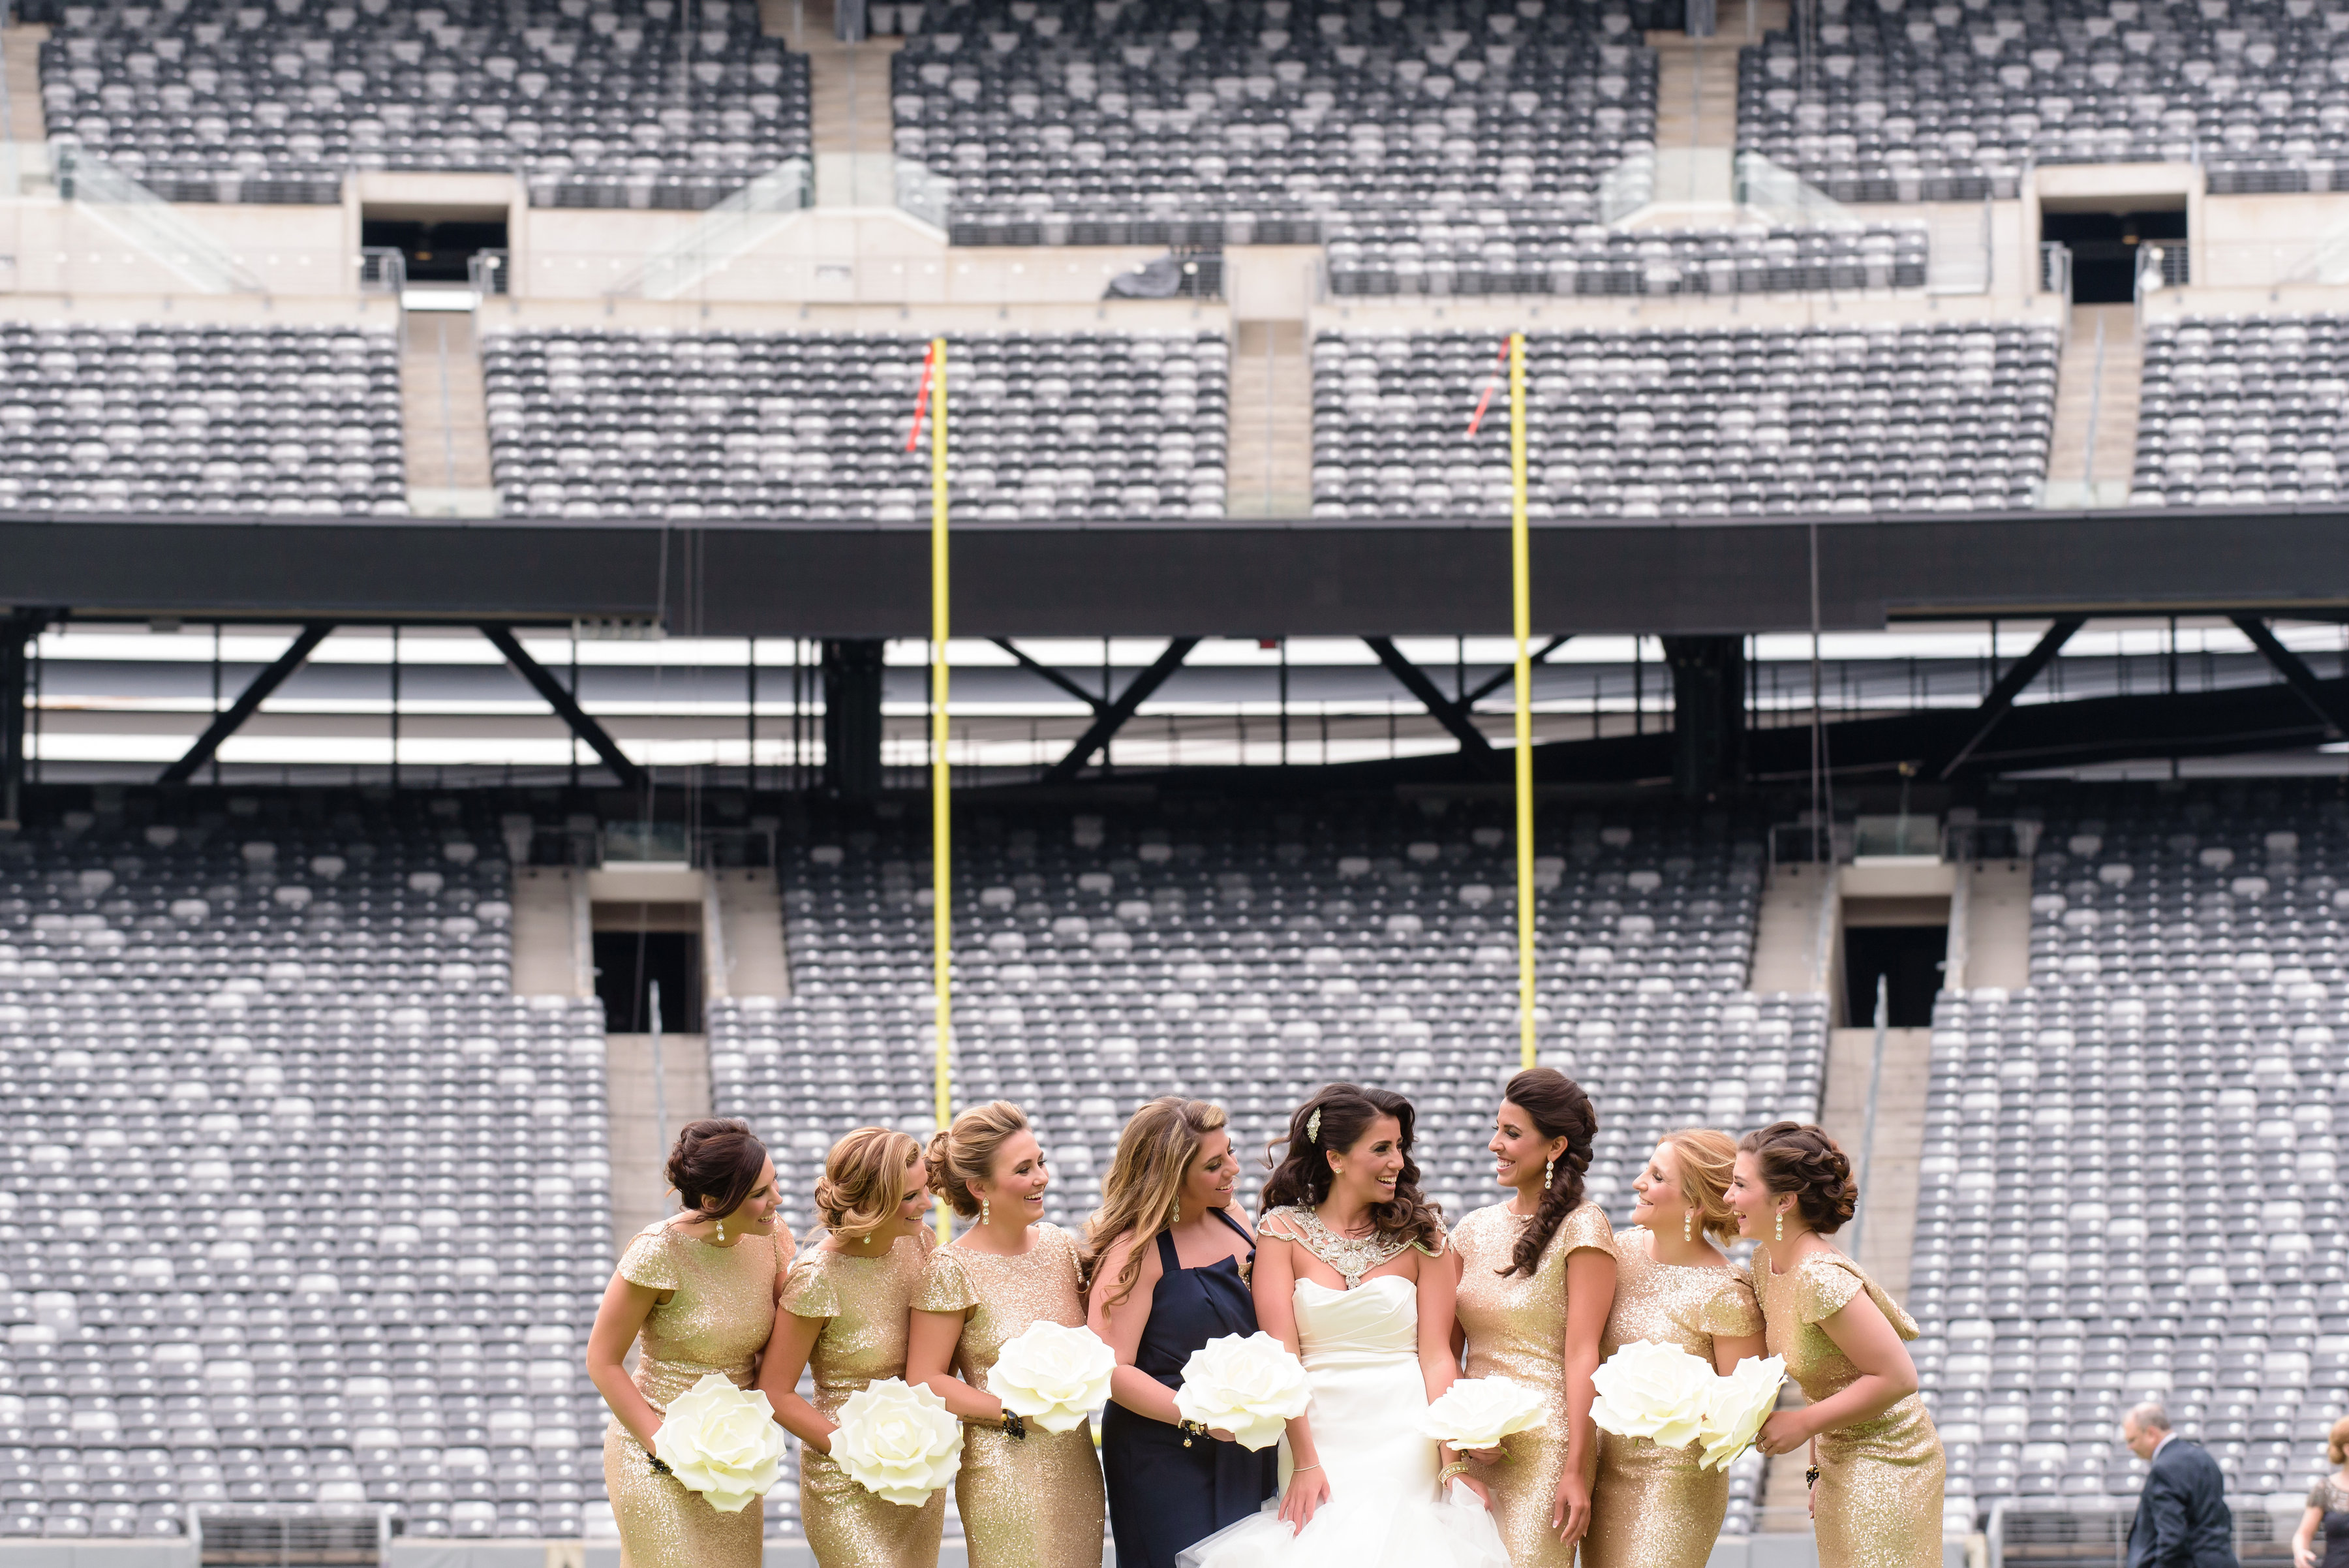 Casey Puleo and Ed Triggs' Giants wedding in MetLife Stadium. (Credit: Susan Stripling Photography)